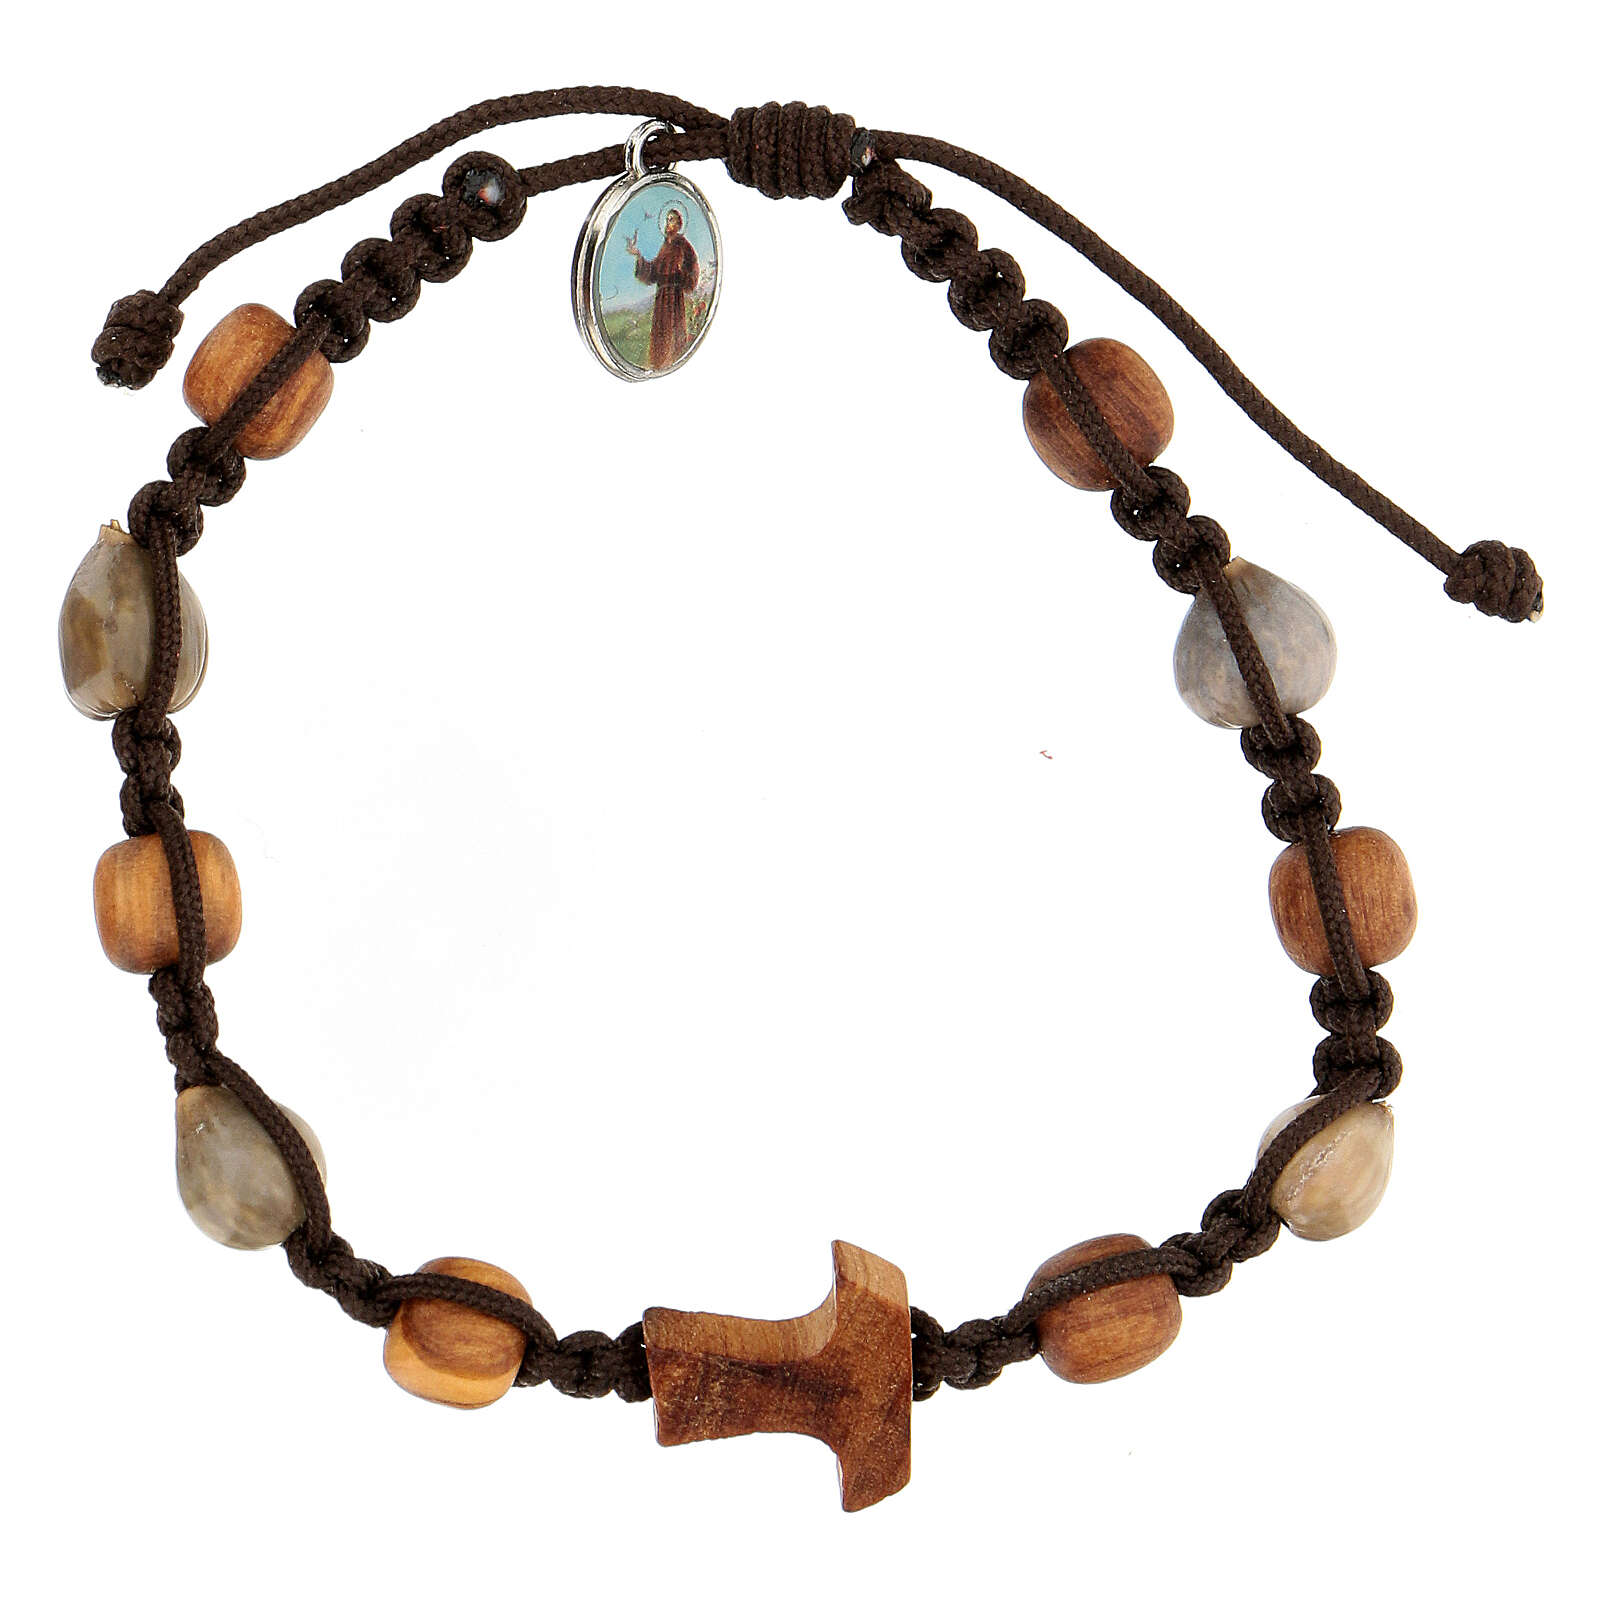 Handcrafted Medjugorje bracelet in Job's Tear composed of beads and tau cross in olive wood 4